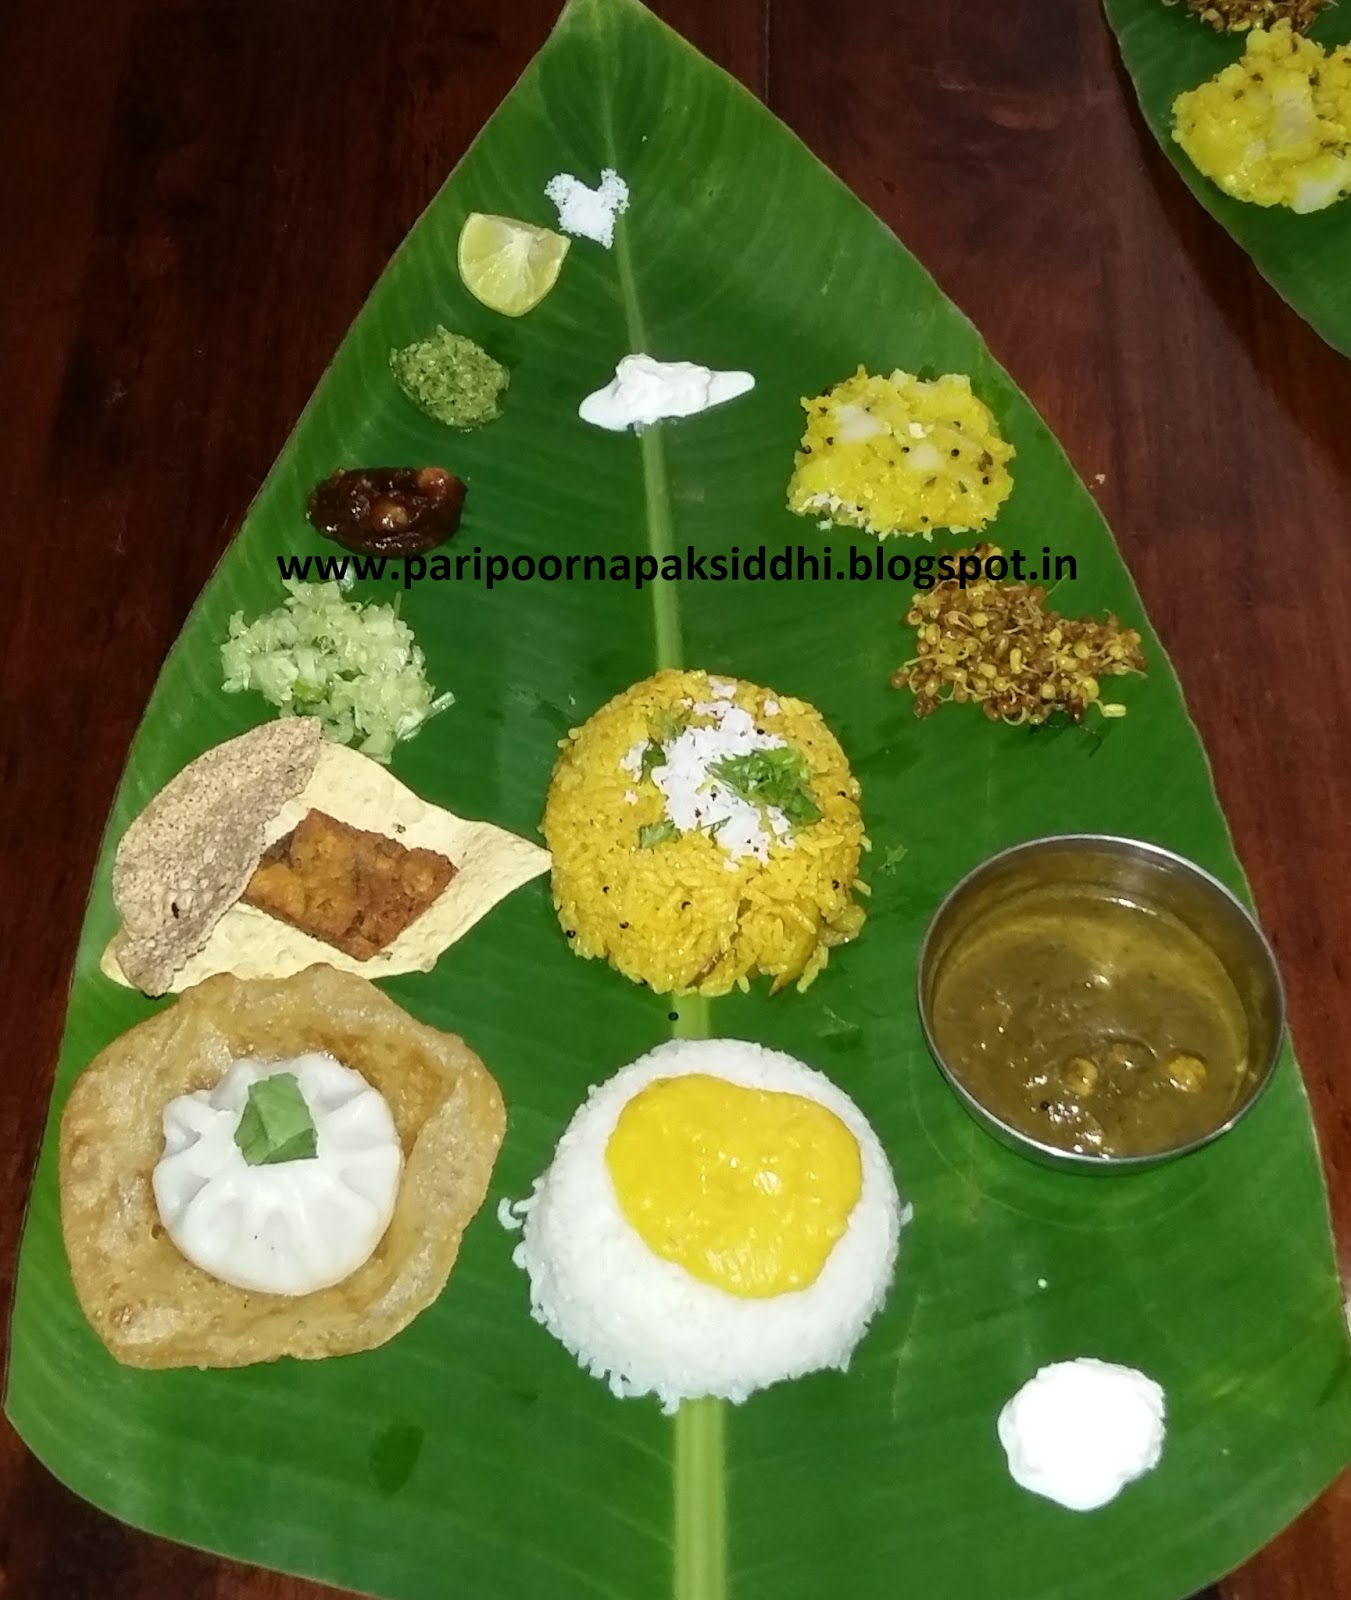 Paripoorna paksiddhi how to serve maharashtrian meal on a banana leaf each food has its specific designated position on the leaf plate and thats also the sequence that is followed even for re serves forumfinder Choice Image